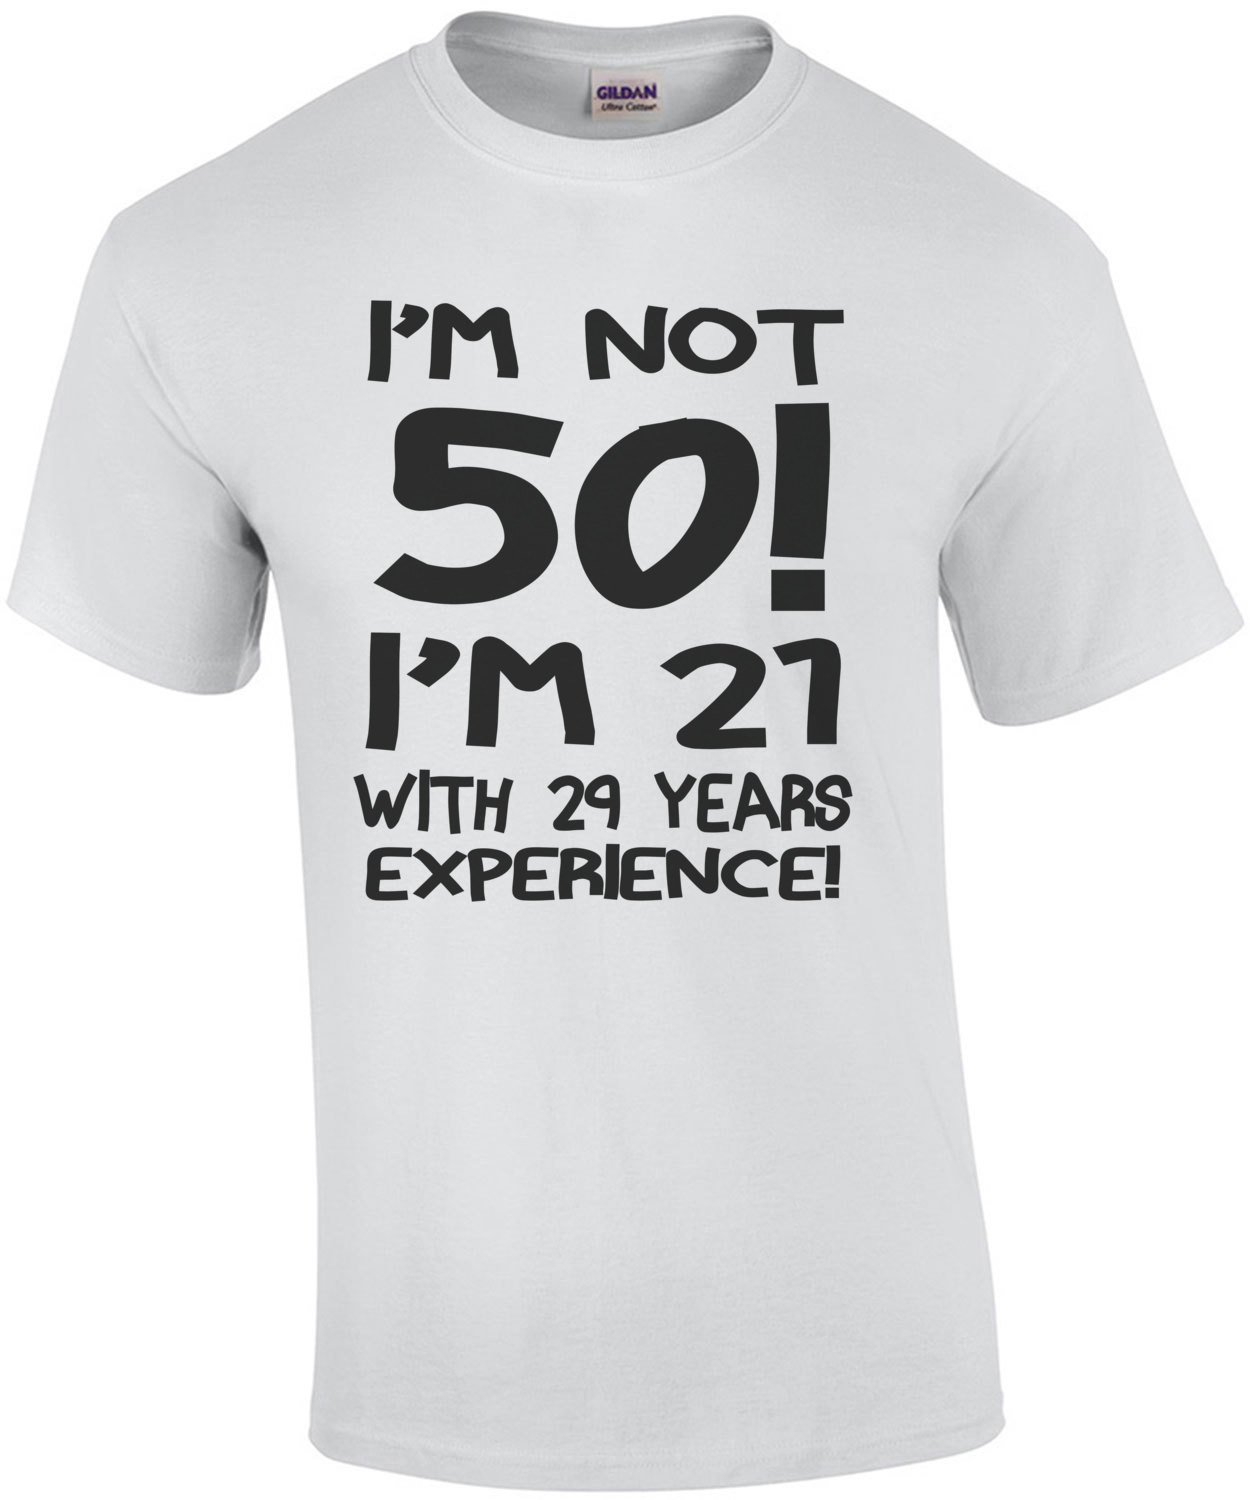 I'm Not 50 I'm 21 With 29 Years Exerience T-Shirt